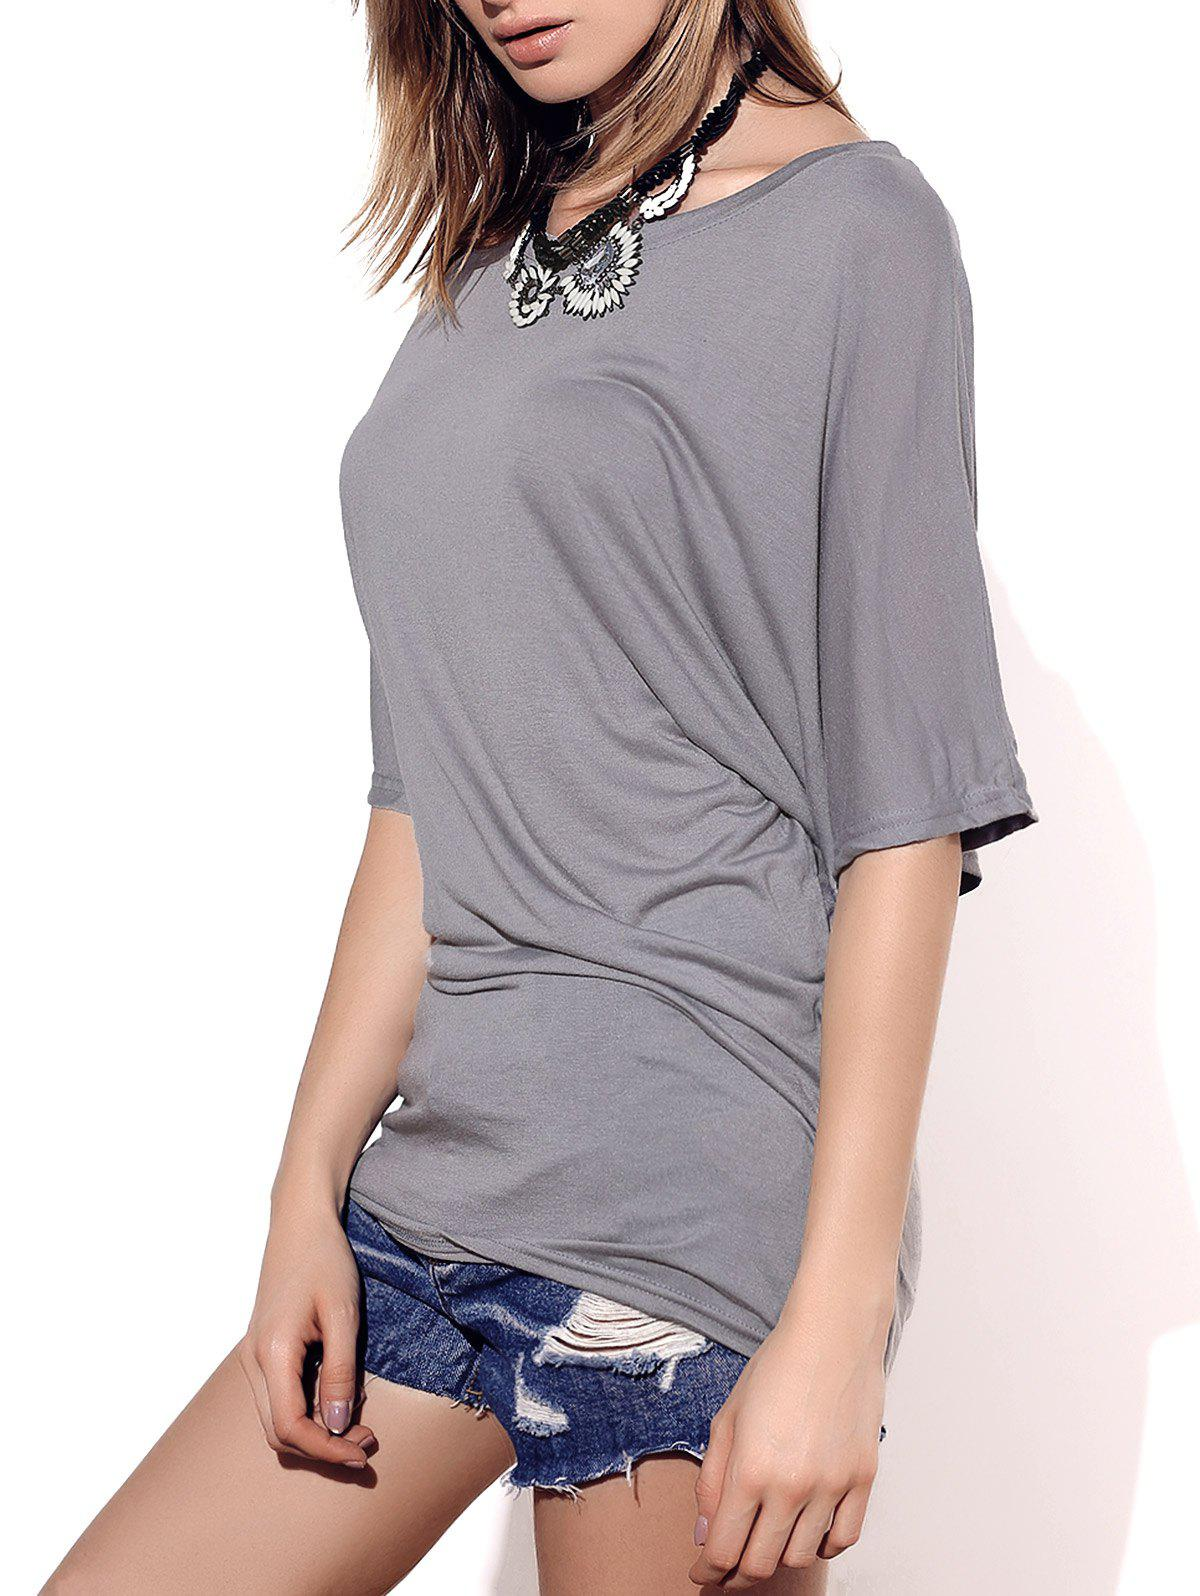 Boat Neck Short Sleeve Solid Color T Shirt 168033810